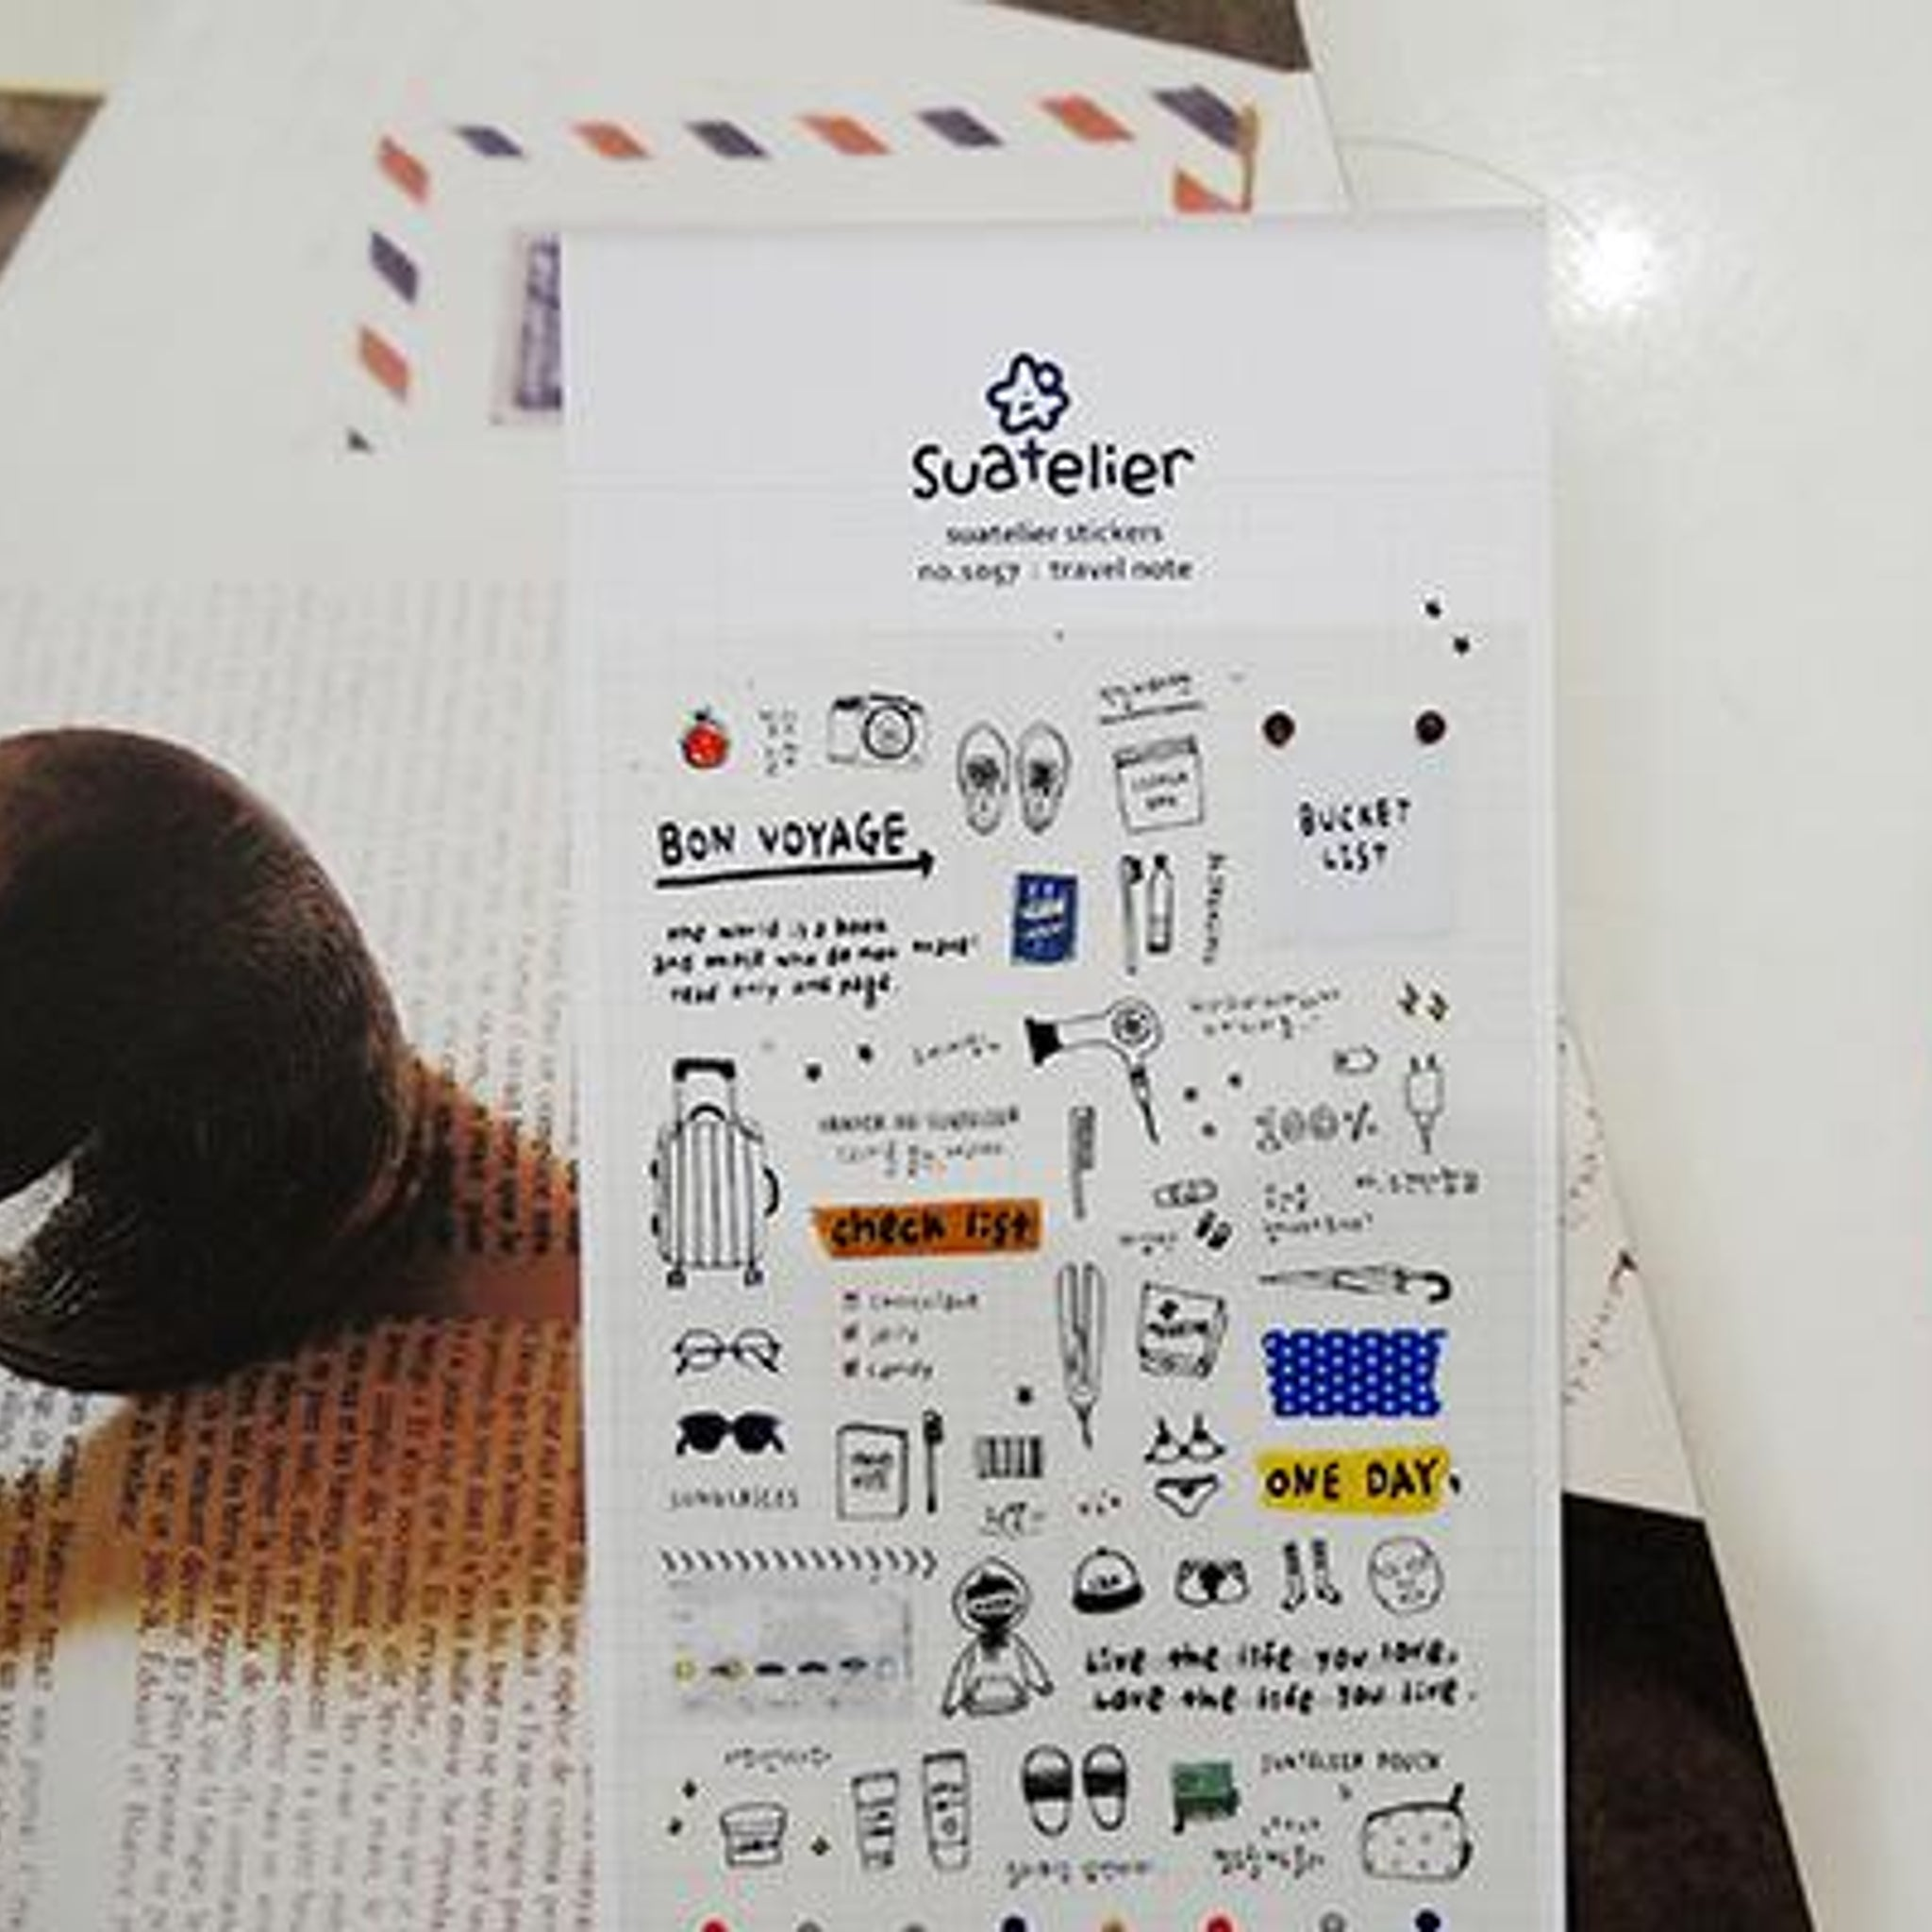 Suatelier Travel Note sticker